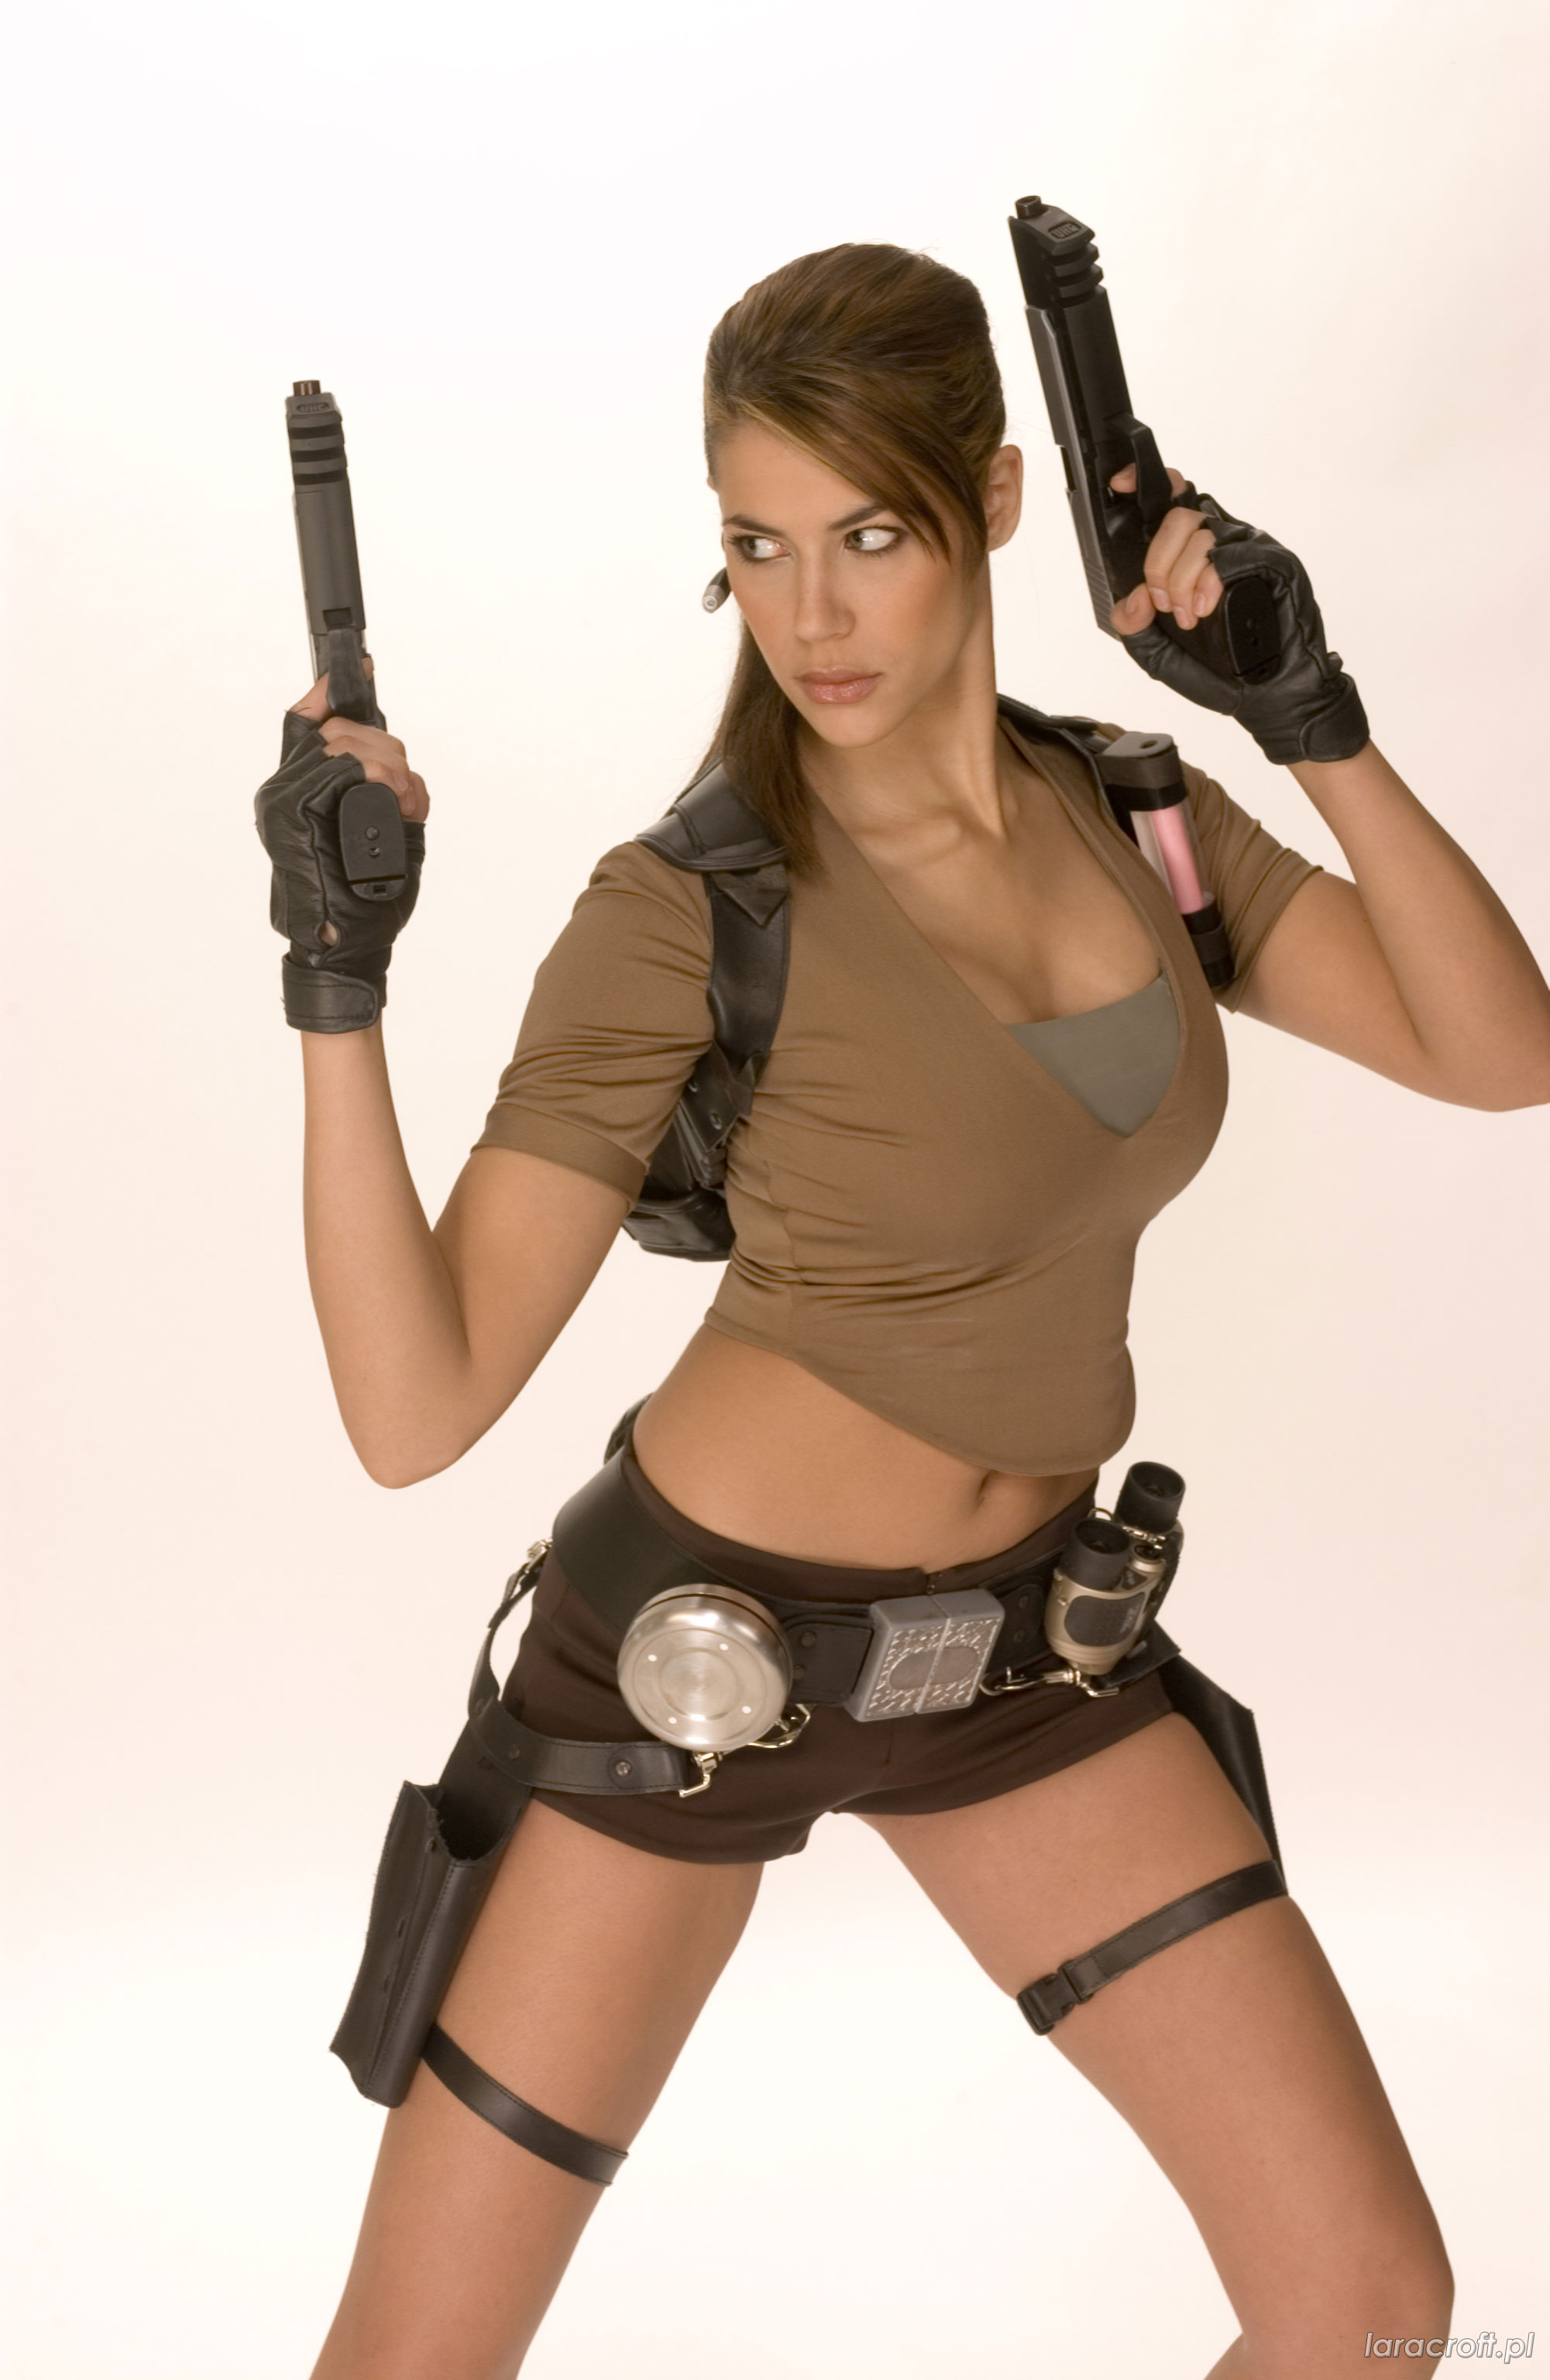 Lara croft fake erotic scenes